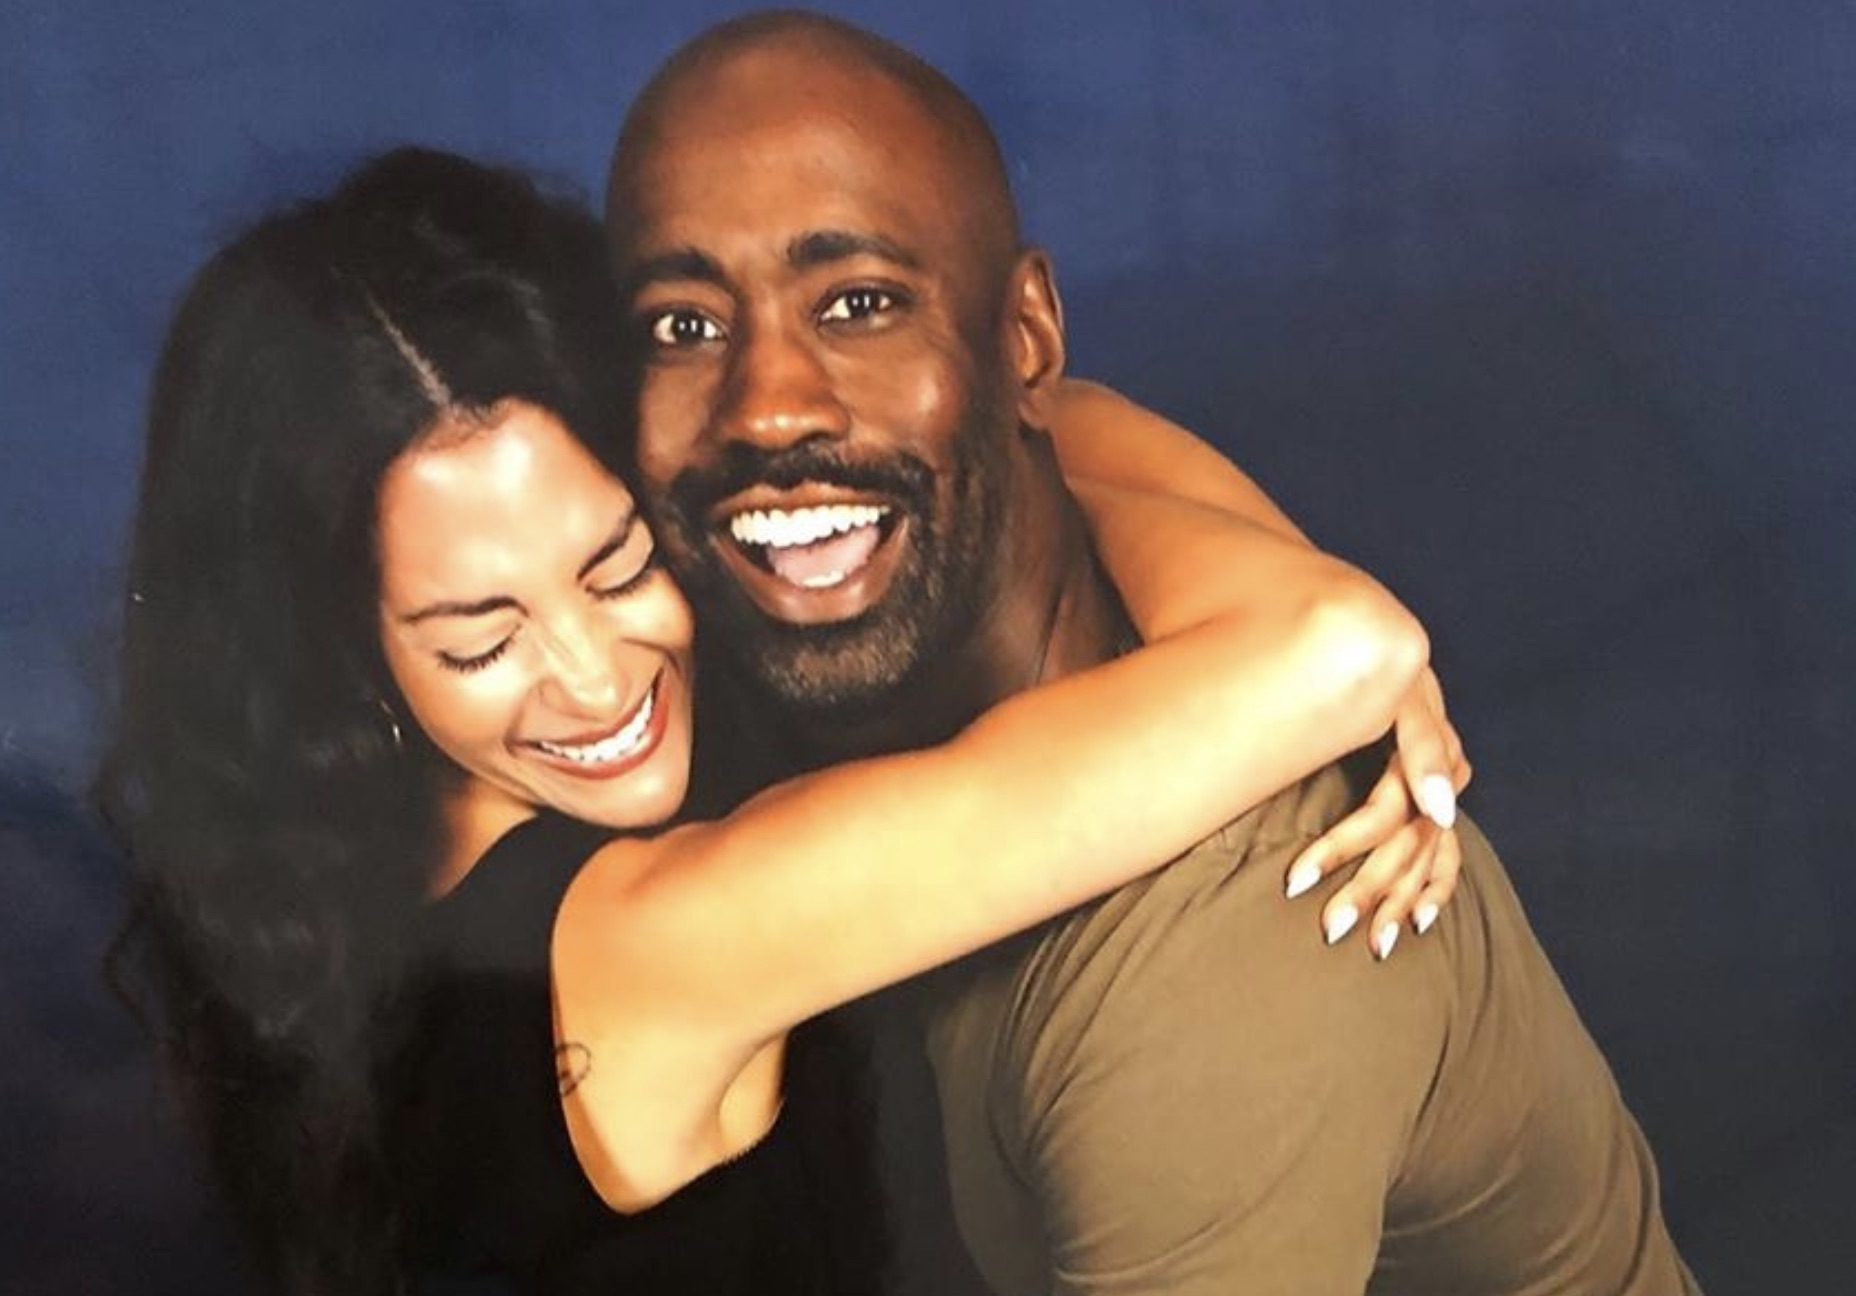 Inbar Lavi, Eve, DB Woodside, Amenadiel, Lucifer-https://www.instagram.com/p/B1UB8IoAT0R/